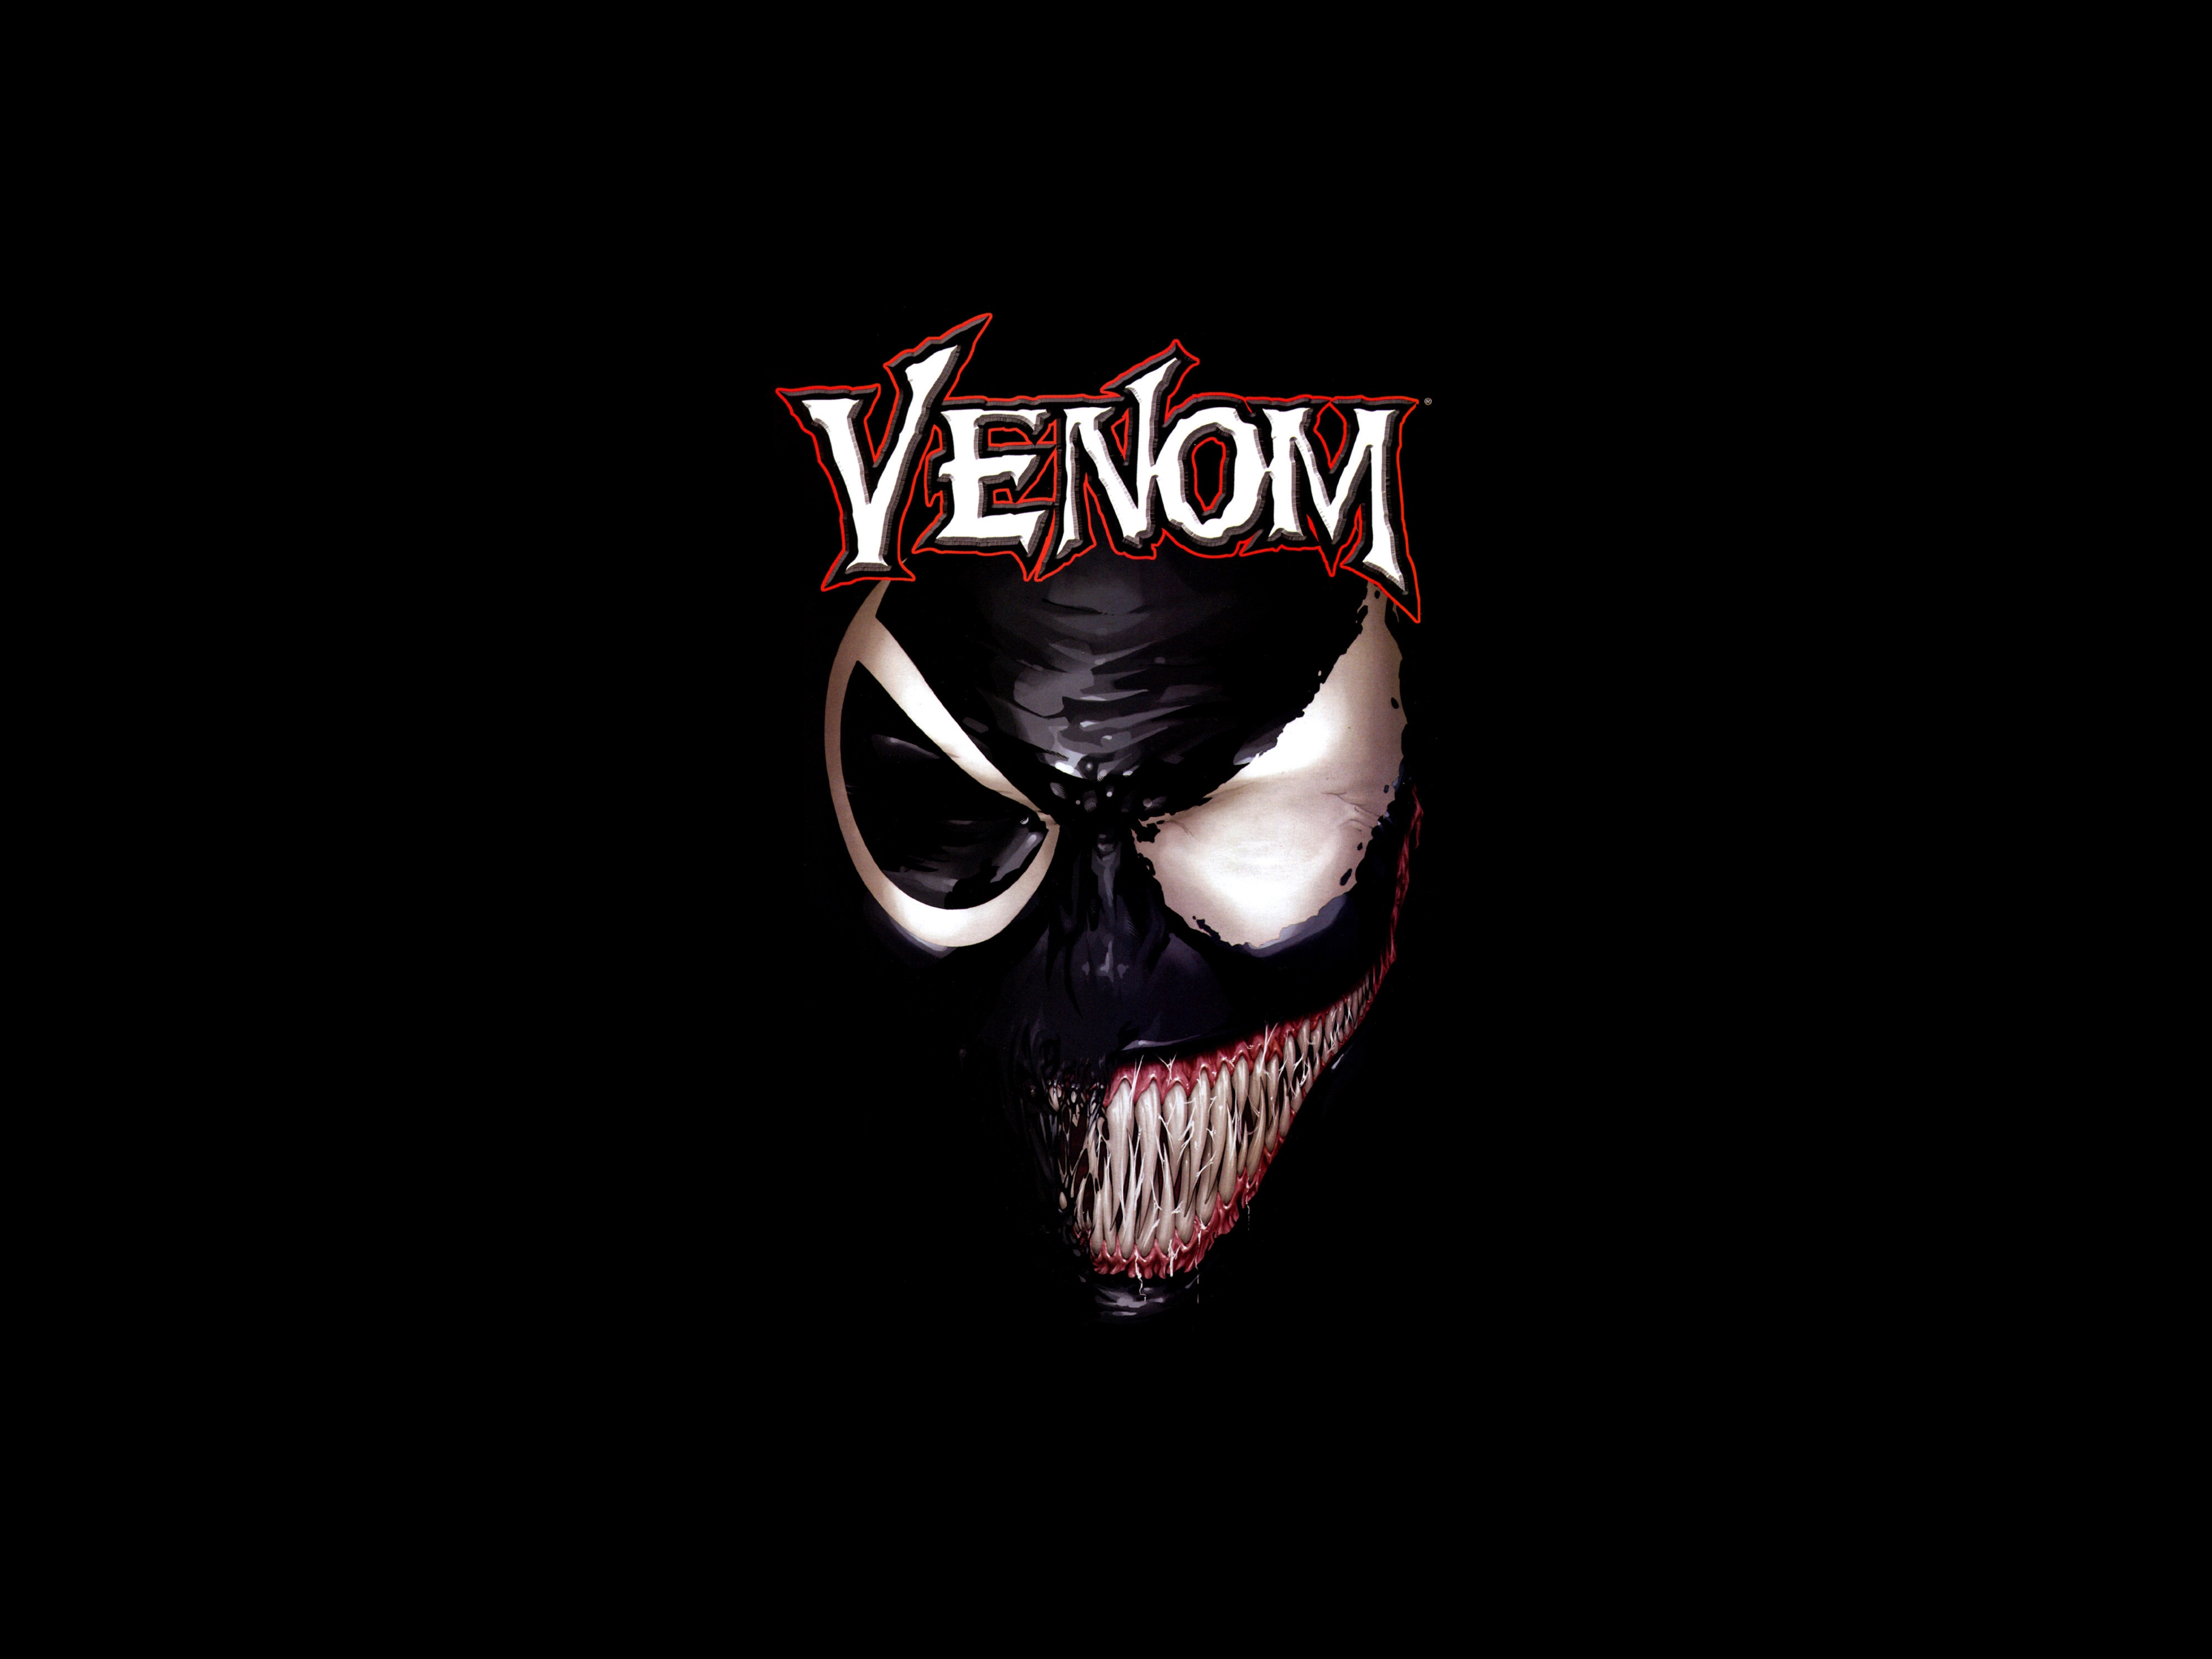 Venom Wallpapers Pictures Images: Venom 4k Ultra HD Wallpaper